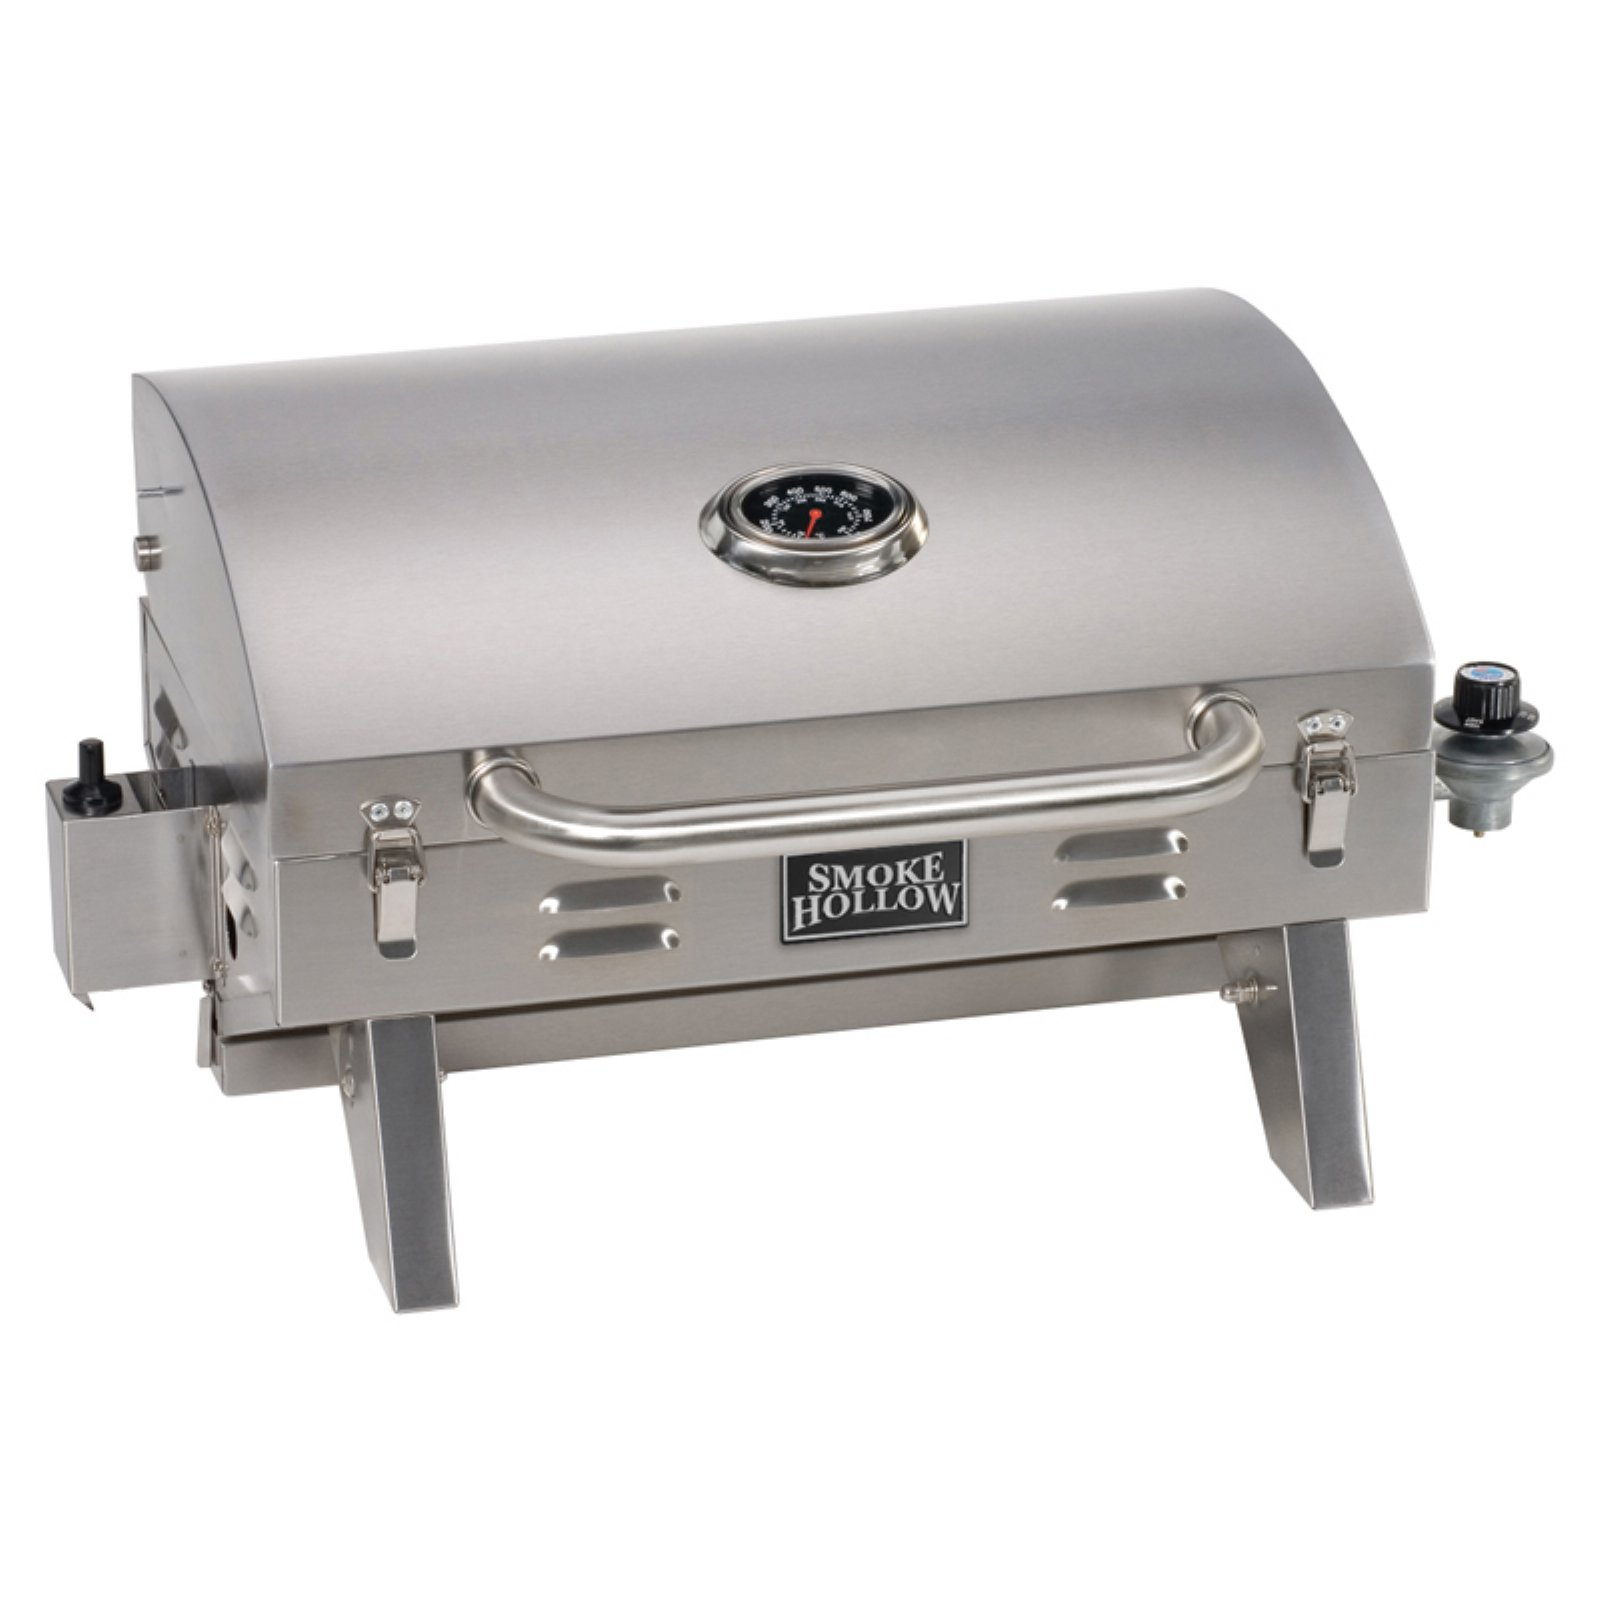 Stainless Steel Tailgate & Portable Grill